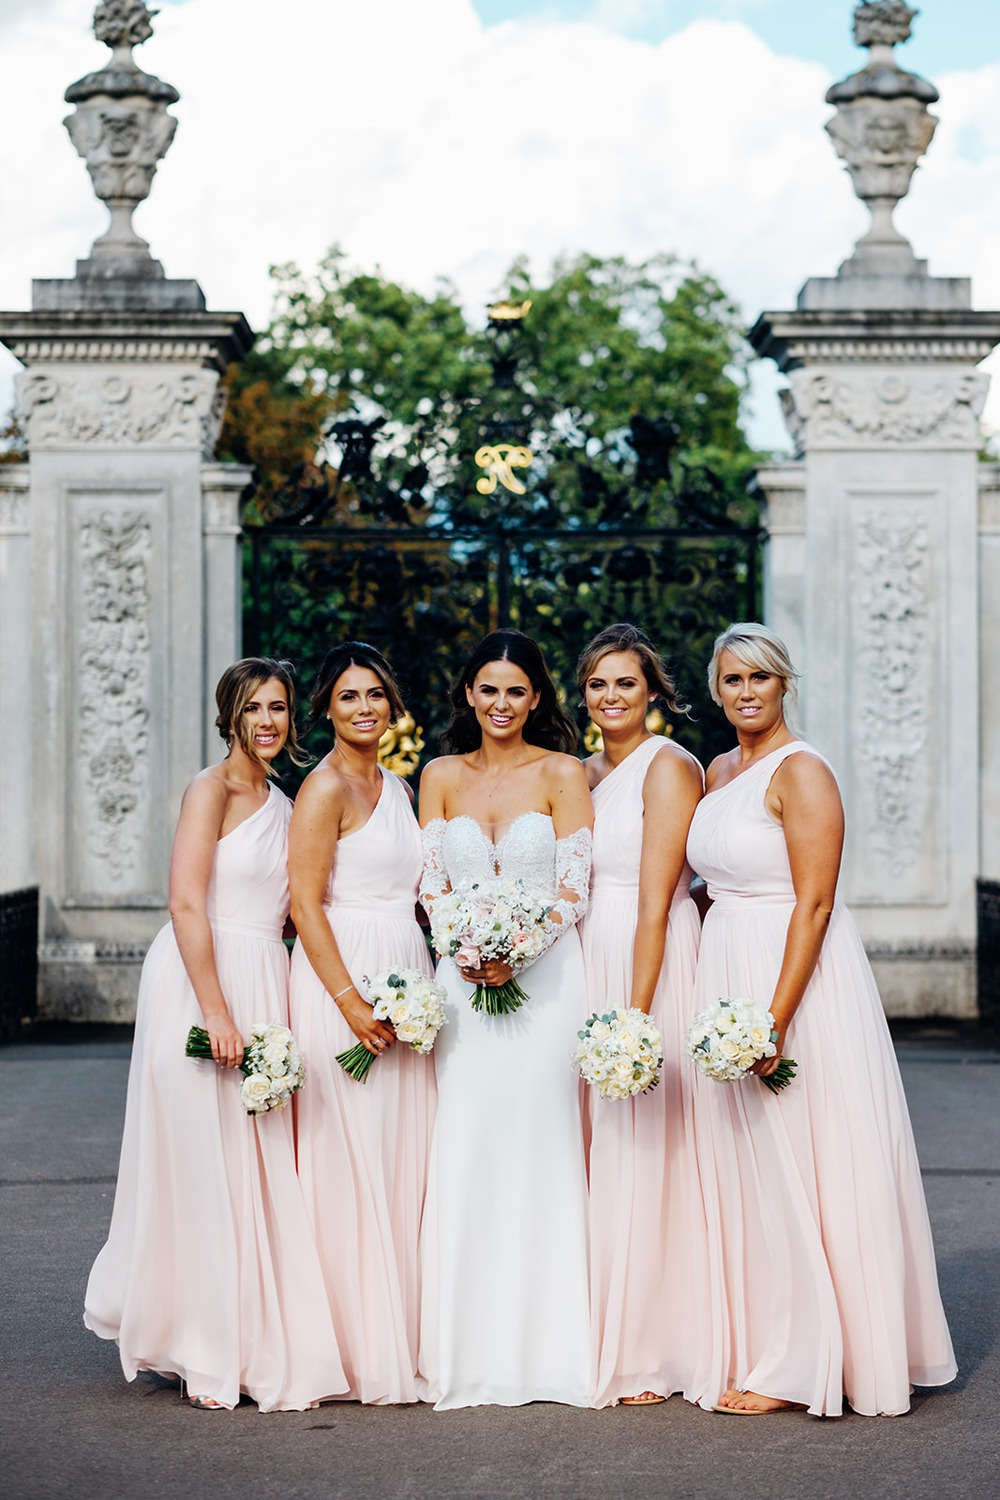 Bride Bridal Pronovias Sweetheart Neckline Detached Sleeves Fishtail Pink Blush One Shoulder Bridesmaids Dress ew Gardens Wedding Marianne Chua Photography